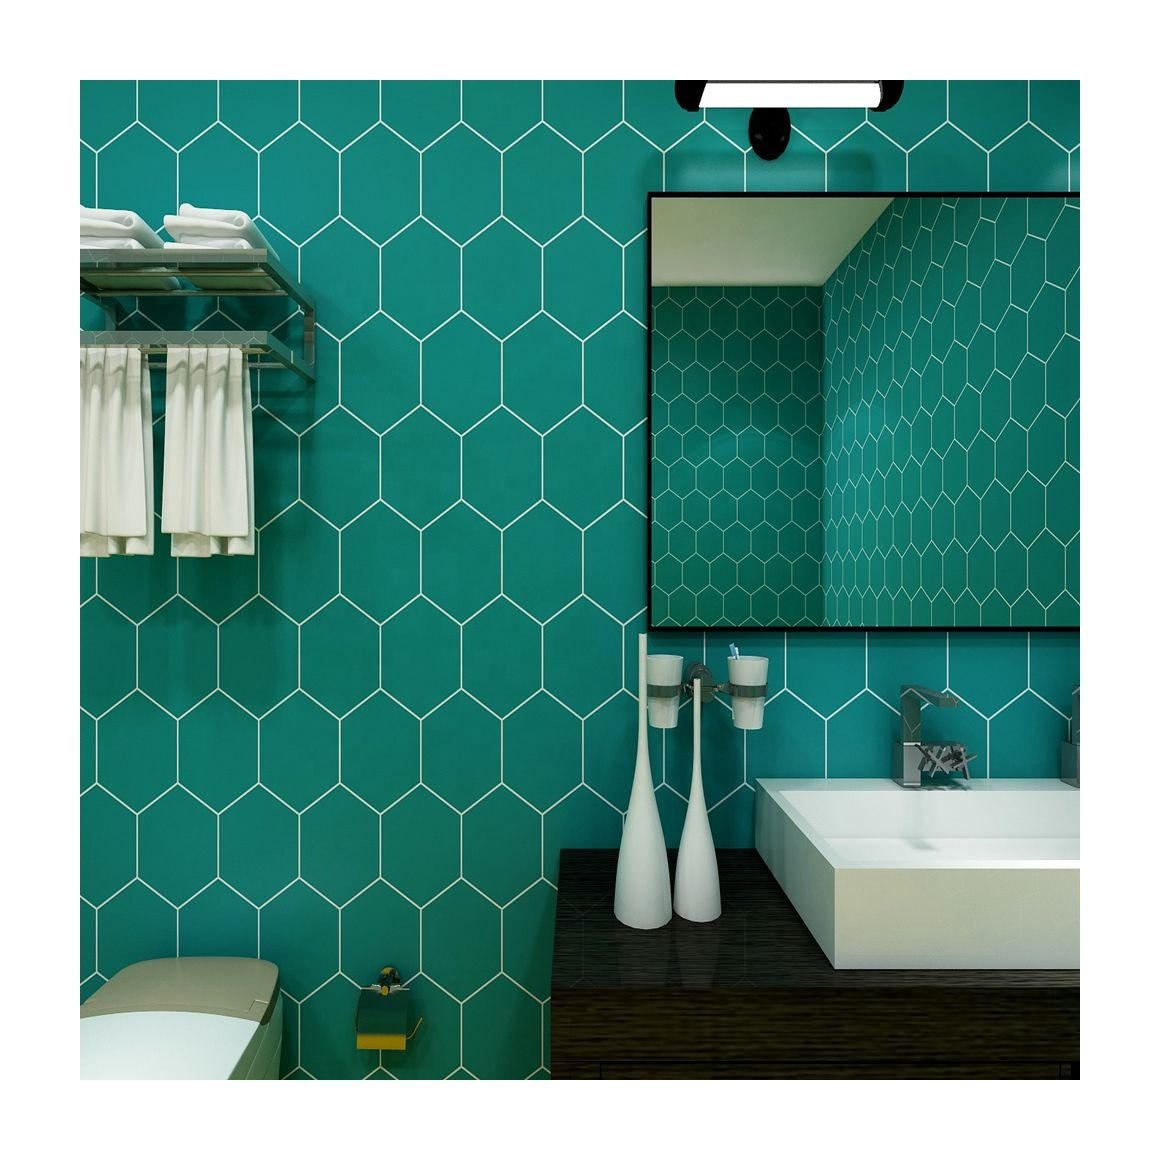 arabic style mosaic tile stickers for living room kitchen retro 3d waterproof mural decal bathroom decor diy adhesive wallpaper buy arabic style